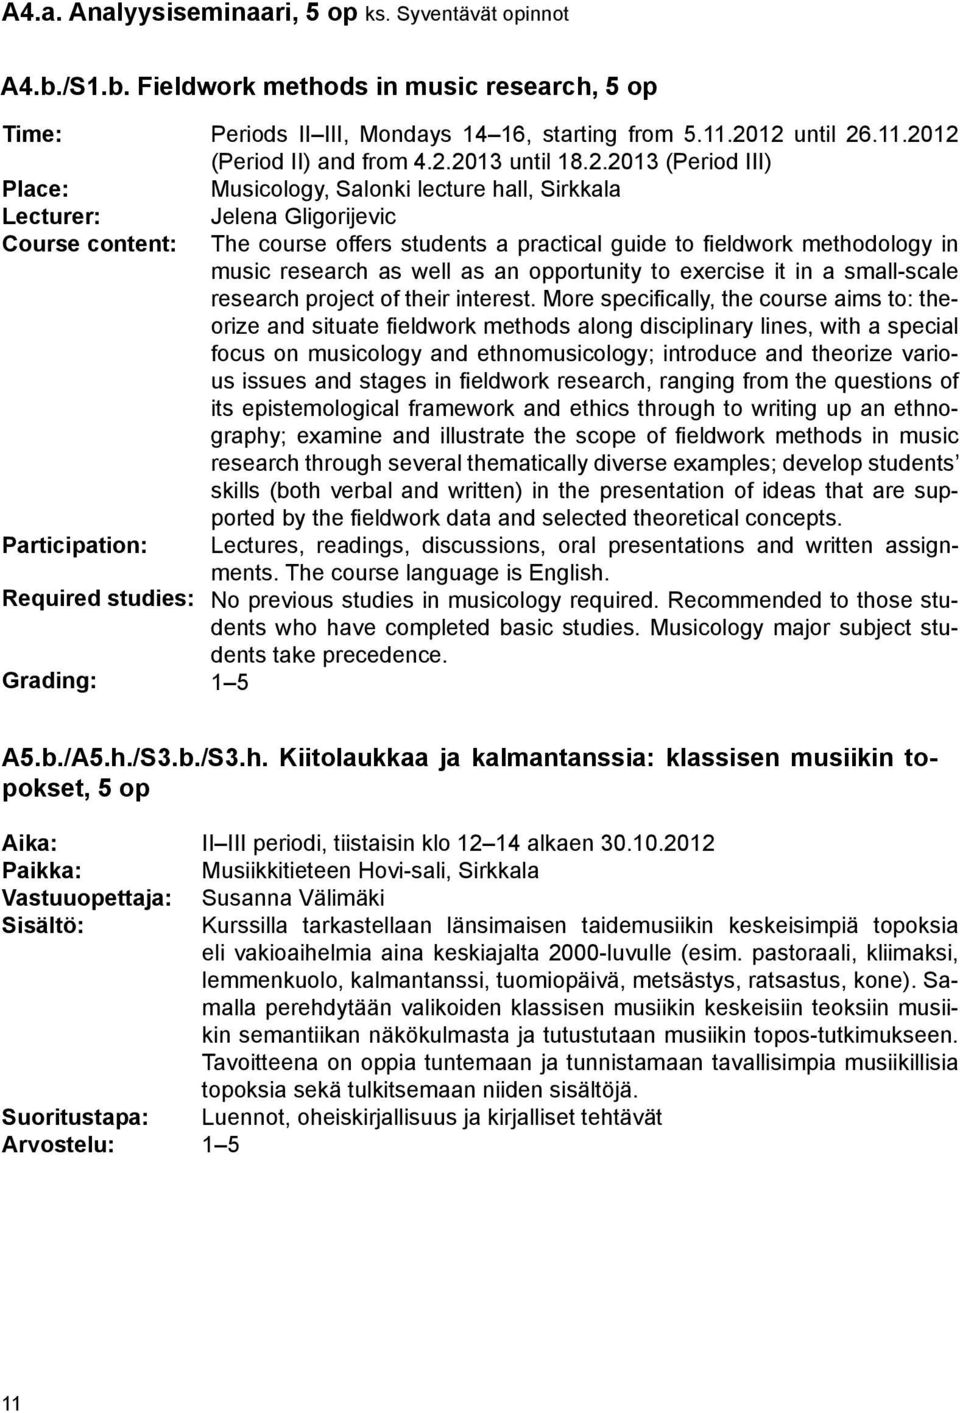 2012 until 26.11.2012 (Period II) and from 4.2.2013 until 18.2.2013 (Period III) Musicology, Salonki lecture hall, Sirkkala Jelena Gligorijevic The course offers students a practical guide to